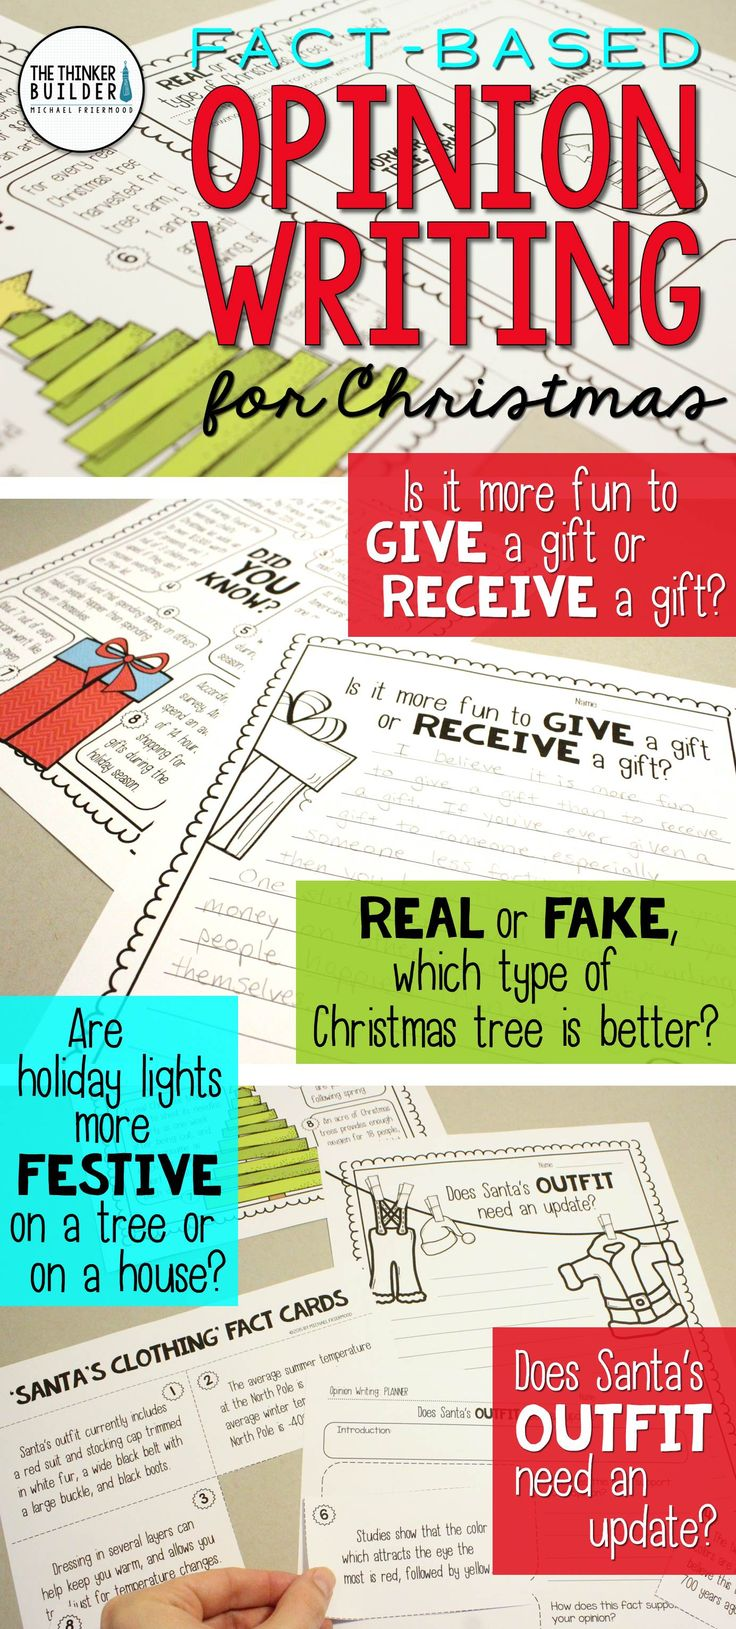 "Opinion writing for Christmas! Full lessons, each focused around one of 4 engaging questions, like, ""Is it more fun to give a gift or receive a gift?"" Carefully chosen facts included for students to analyze, discuss, and use to support their opinions. Complete with lesson plans, printables, and extensions. Gr 2-5 ($) Or see the Full-Year Bundle here: https://www.teacherspayteachers.com/Product/Fact-Based-Opinion-Writing-BUNDLE-2480913"